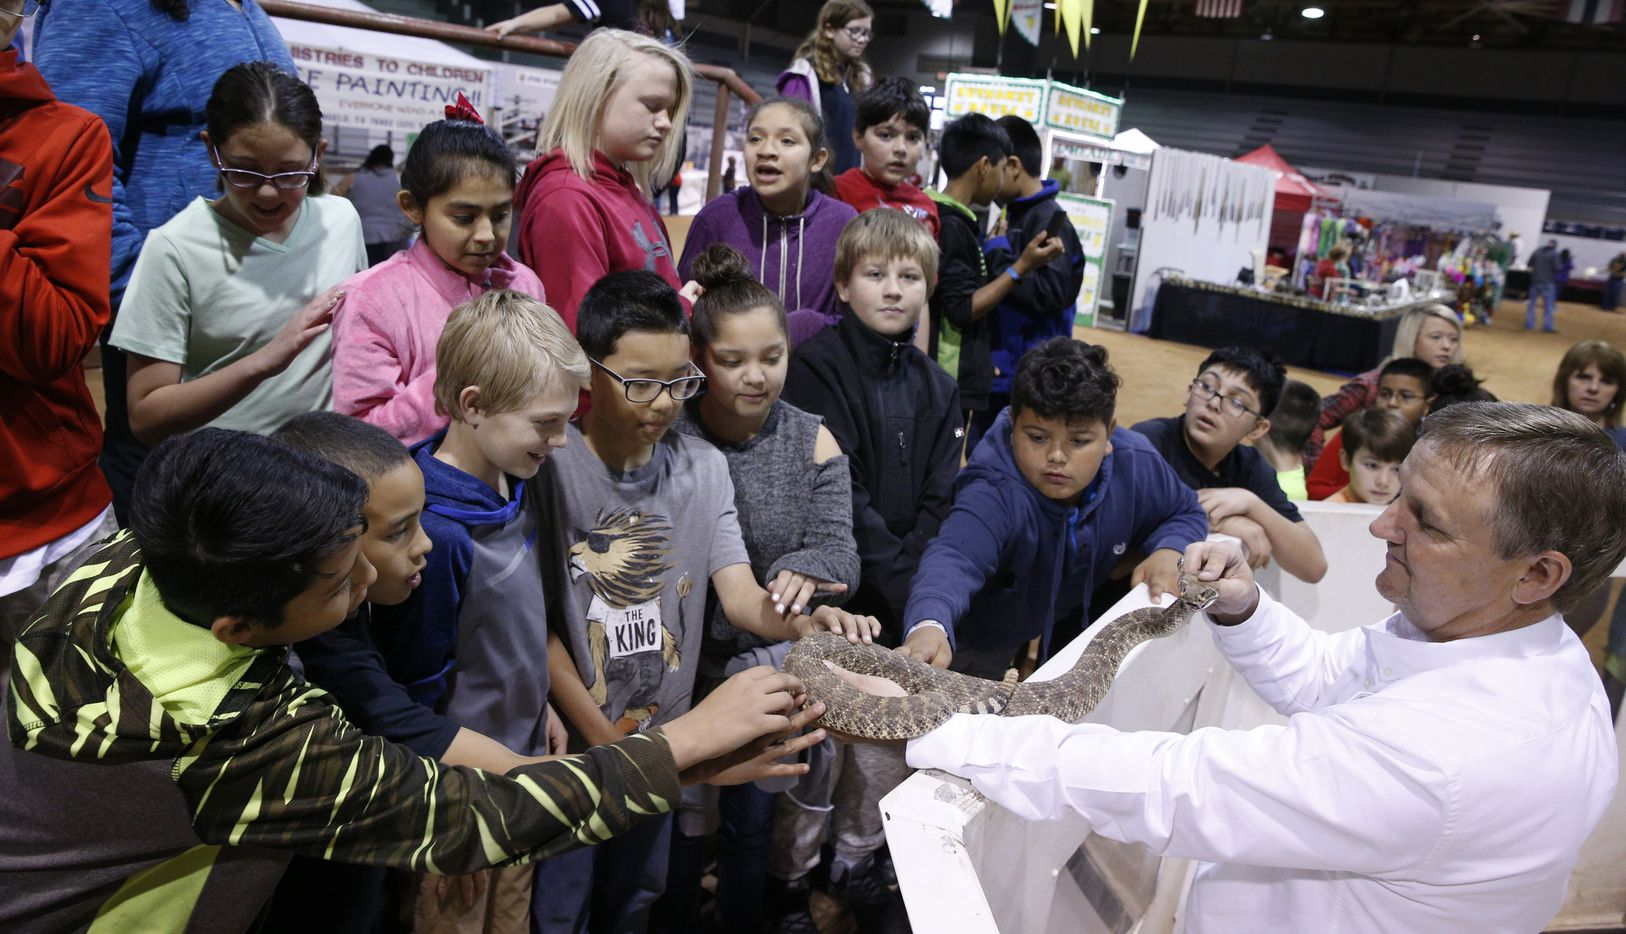 Dennis Cumbie allows children from Sweetwater Intermediate school to touch a live snake before milking it at Nolan County Coliseum Sweetwater Rattlesnake Roundup in Sweetwater on March 10, 2017. (Nathan Hunsinger/The Dallas Morning News)